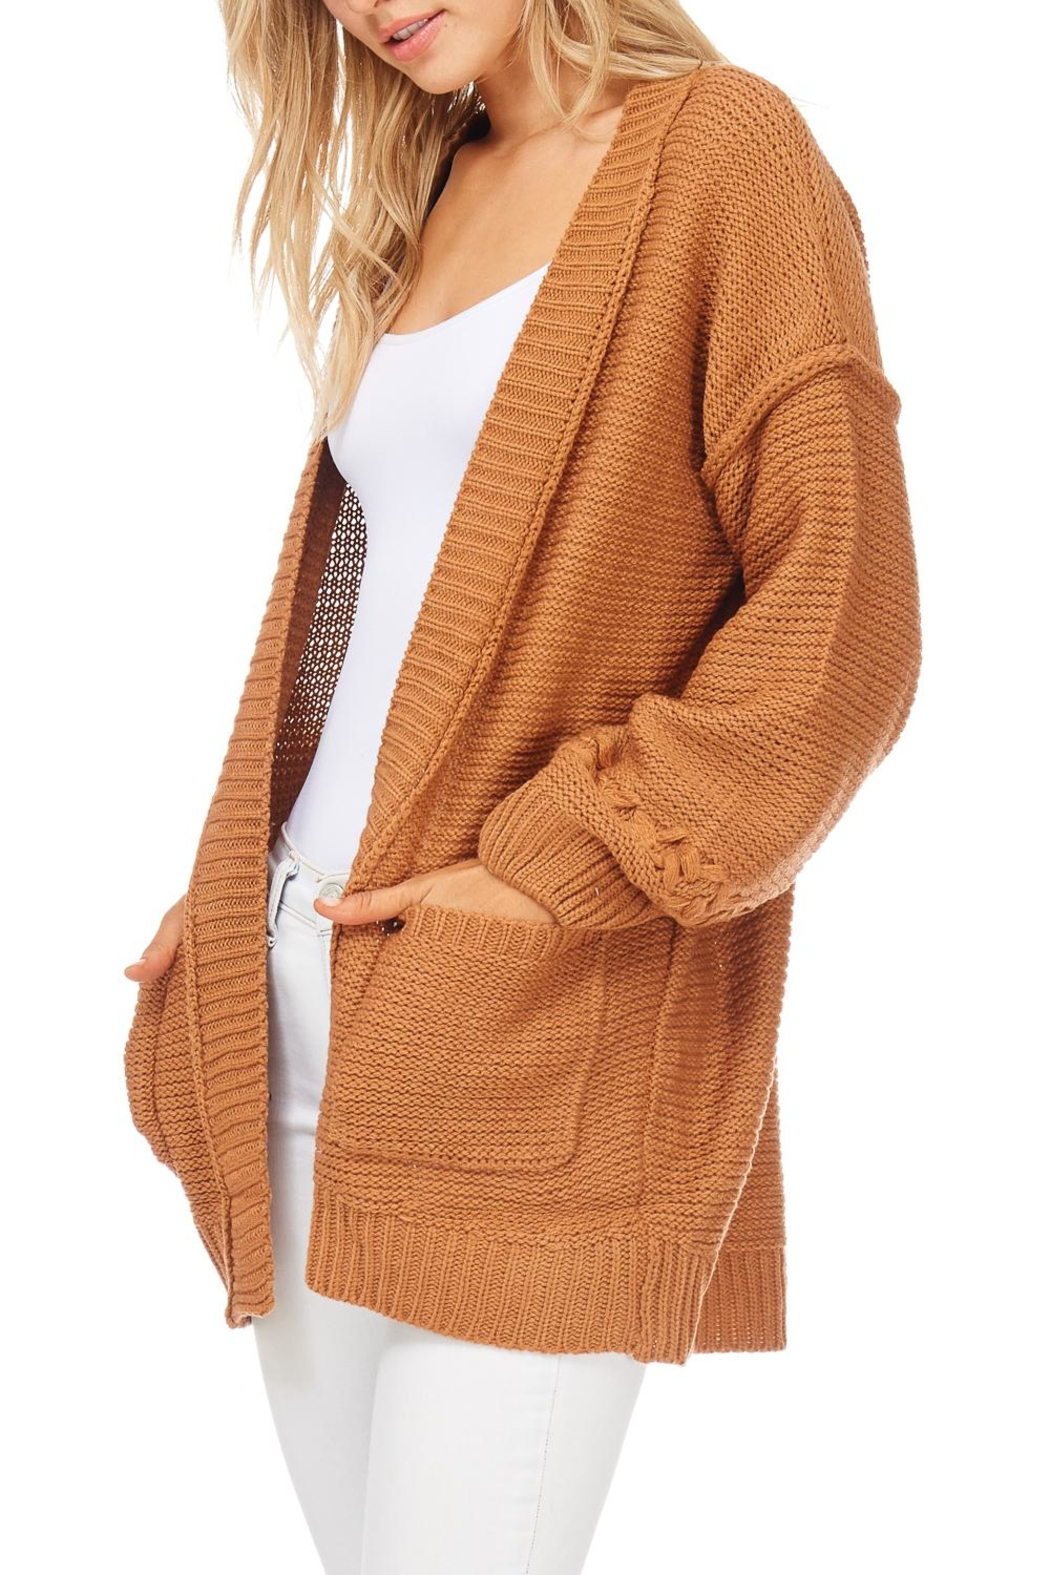 LoveRiche Solid Knit Sweater Cardigan - Side Cropped Image